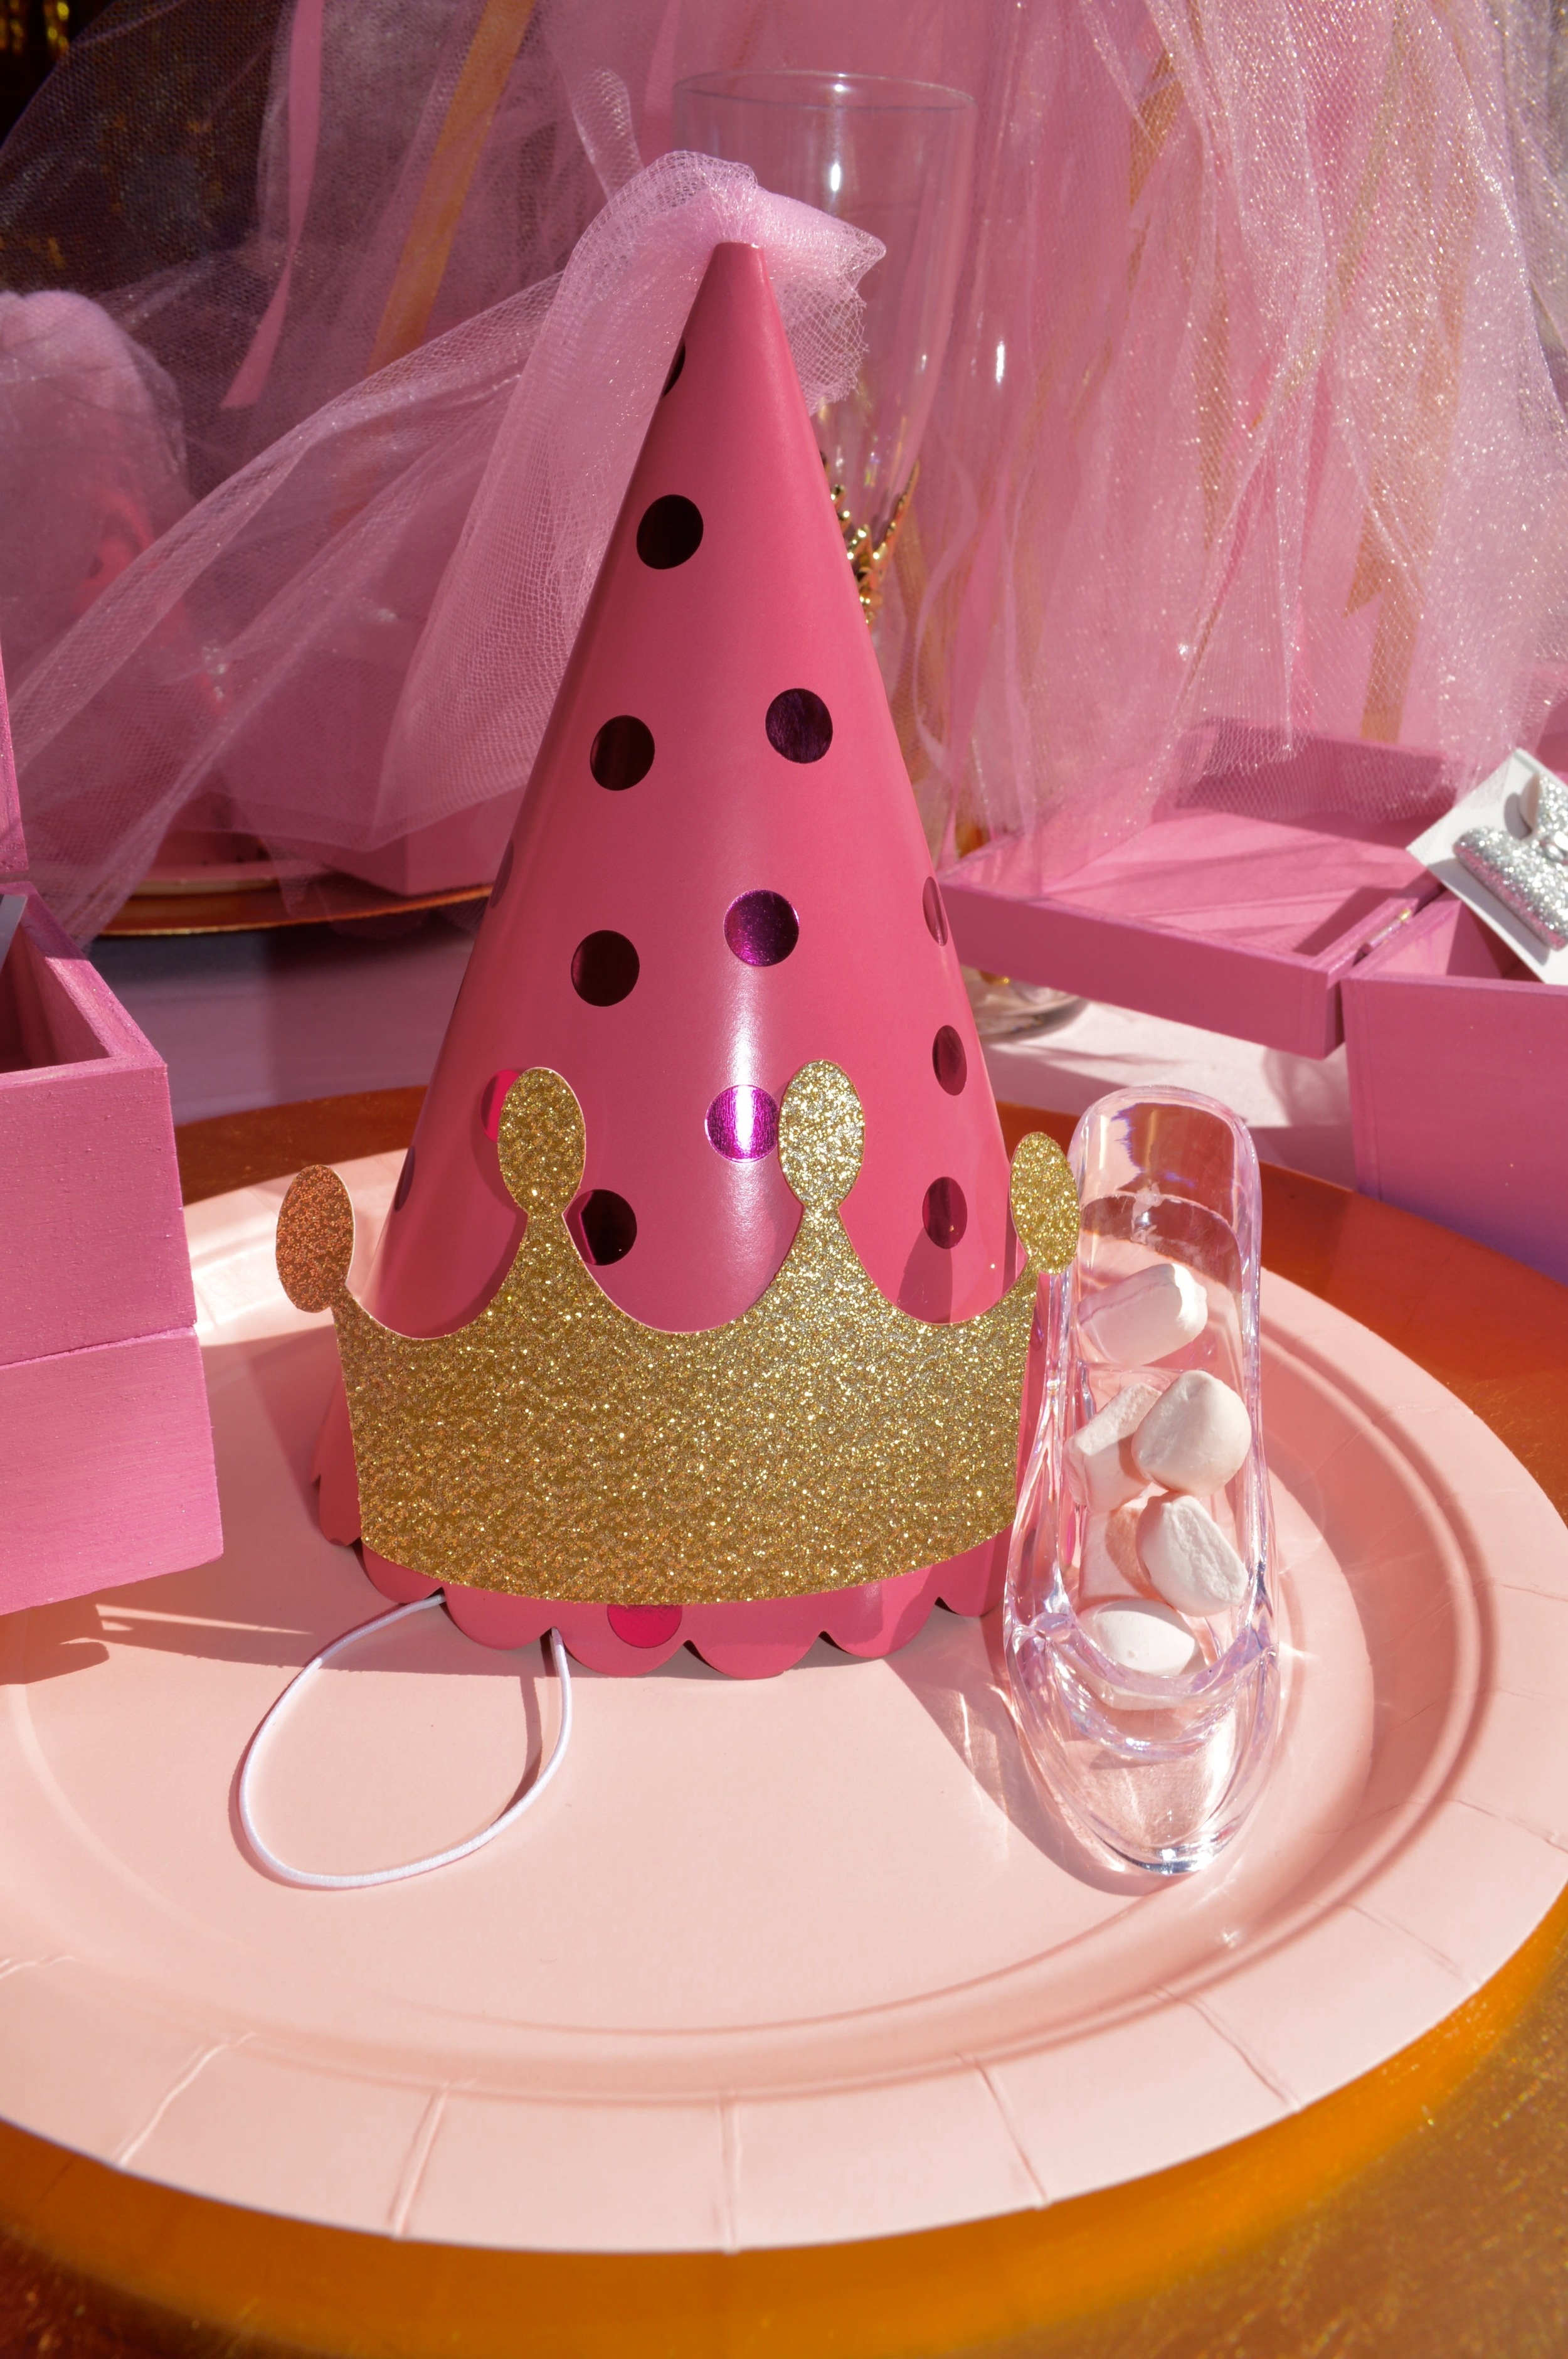 Princess hats made by Down Emery Lane and available for purchase.